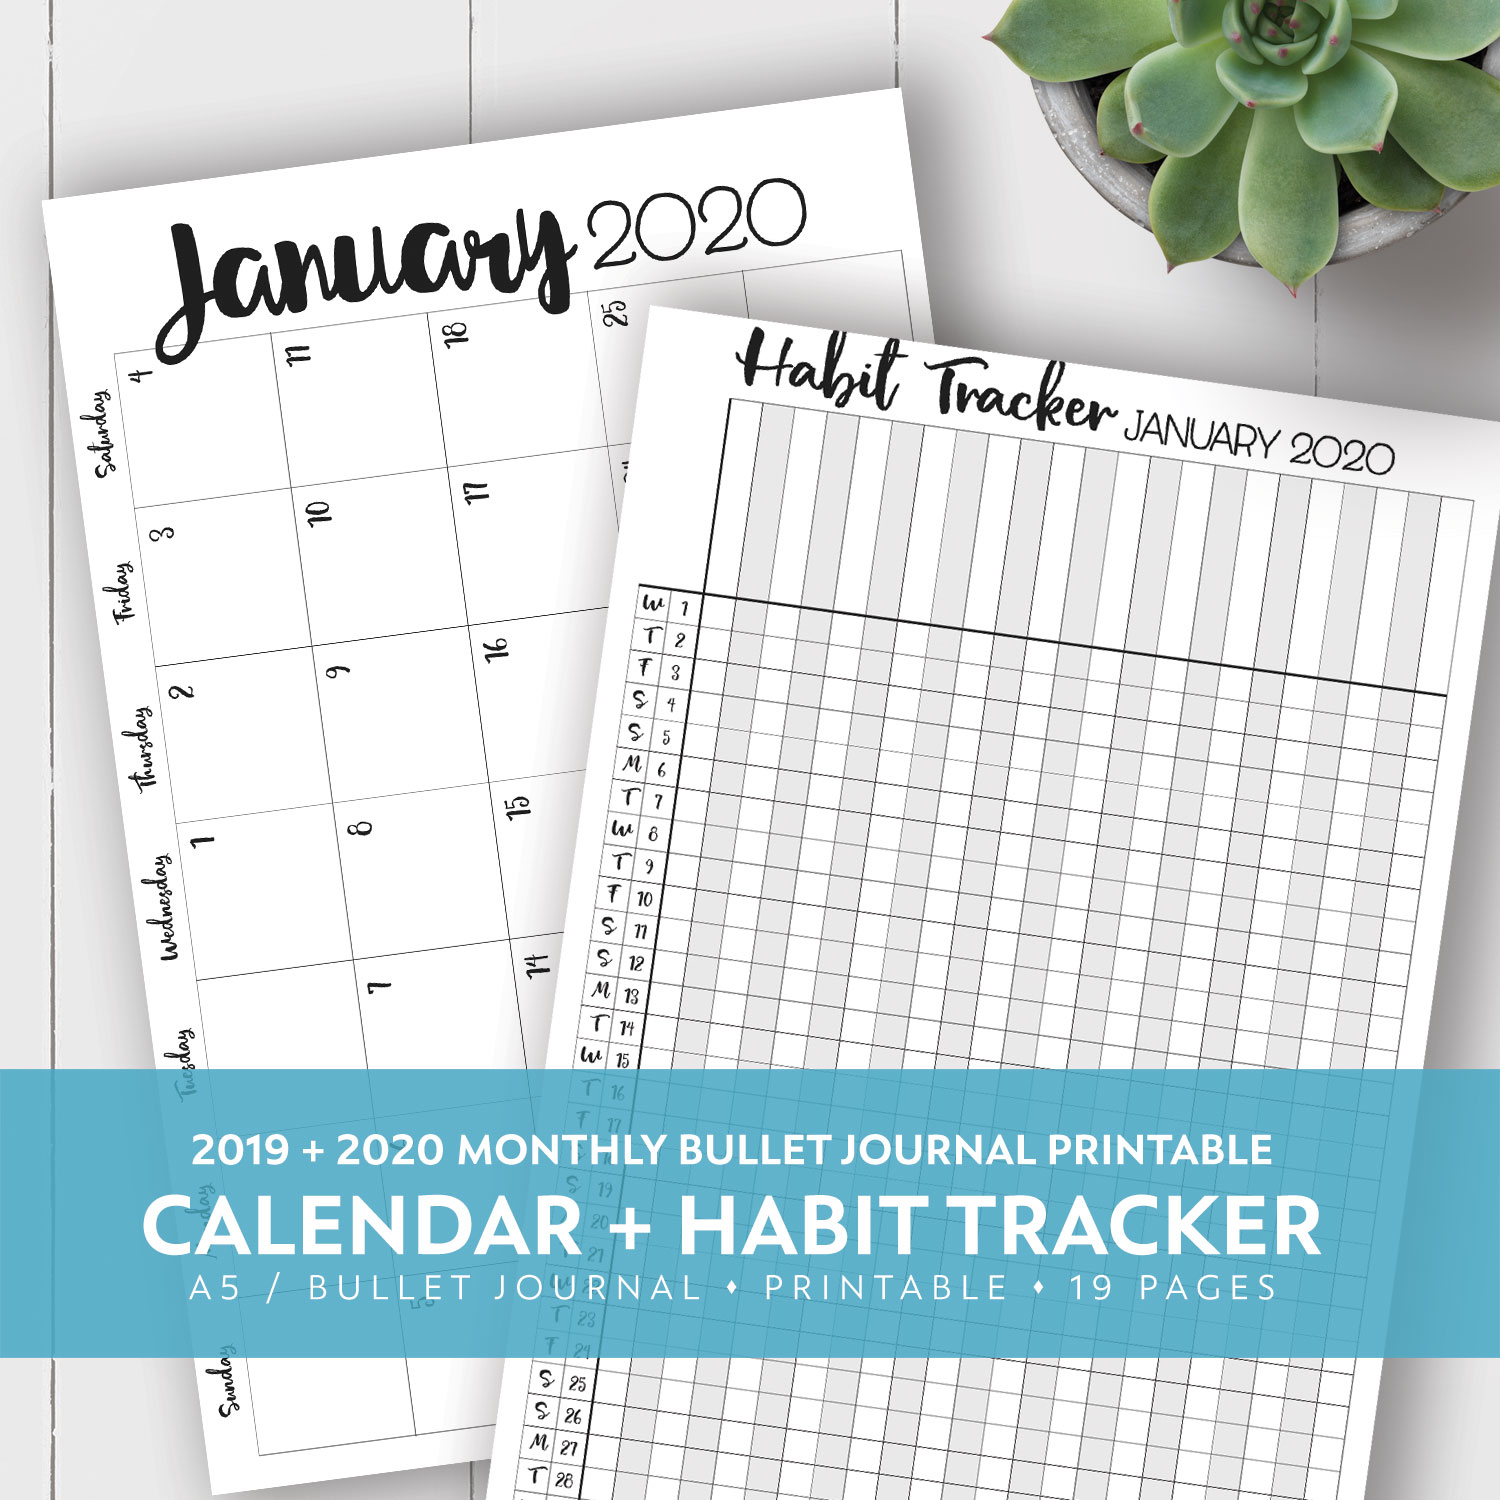 2019 + 2020 Monthly Printable Calendar + Habit Tracker Kit throughout 11 X 8.5 Calendar Pages 2020 Free